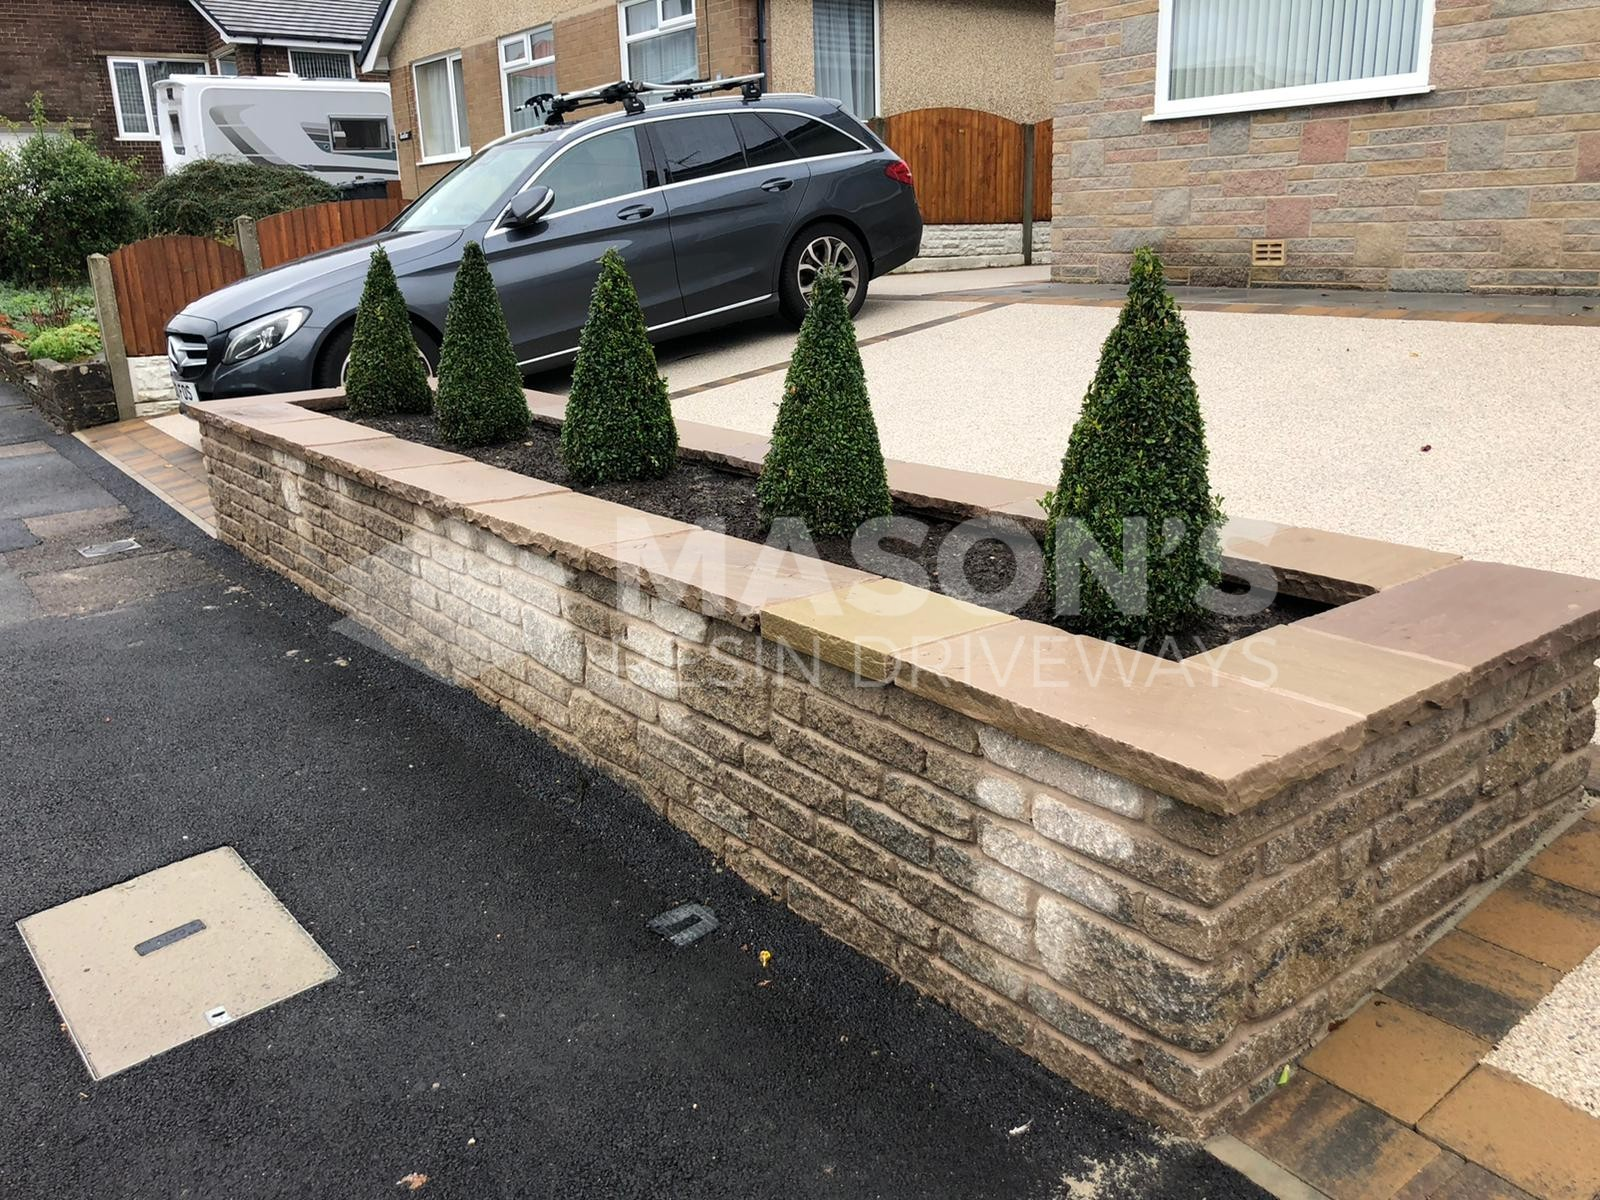 Resin bound driveway pearl quarts view of car and plants in Lancashire